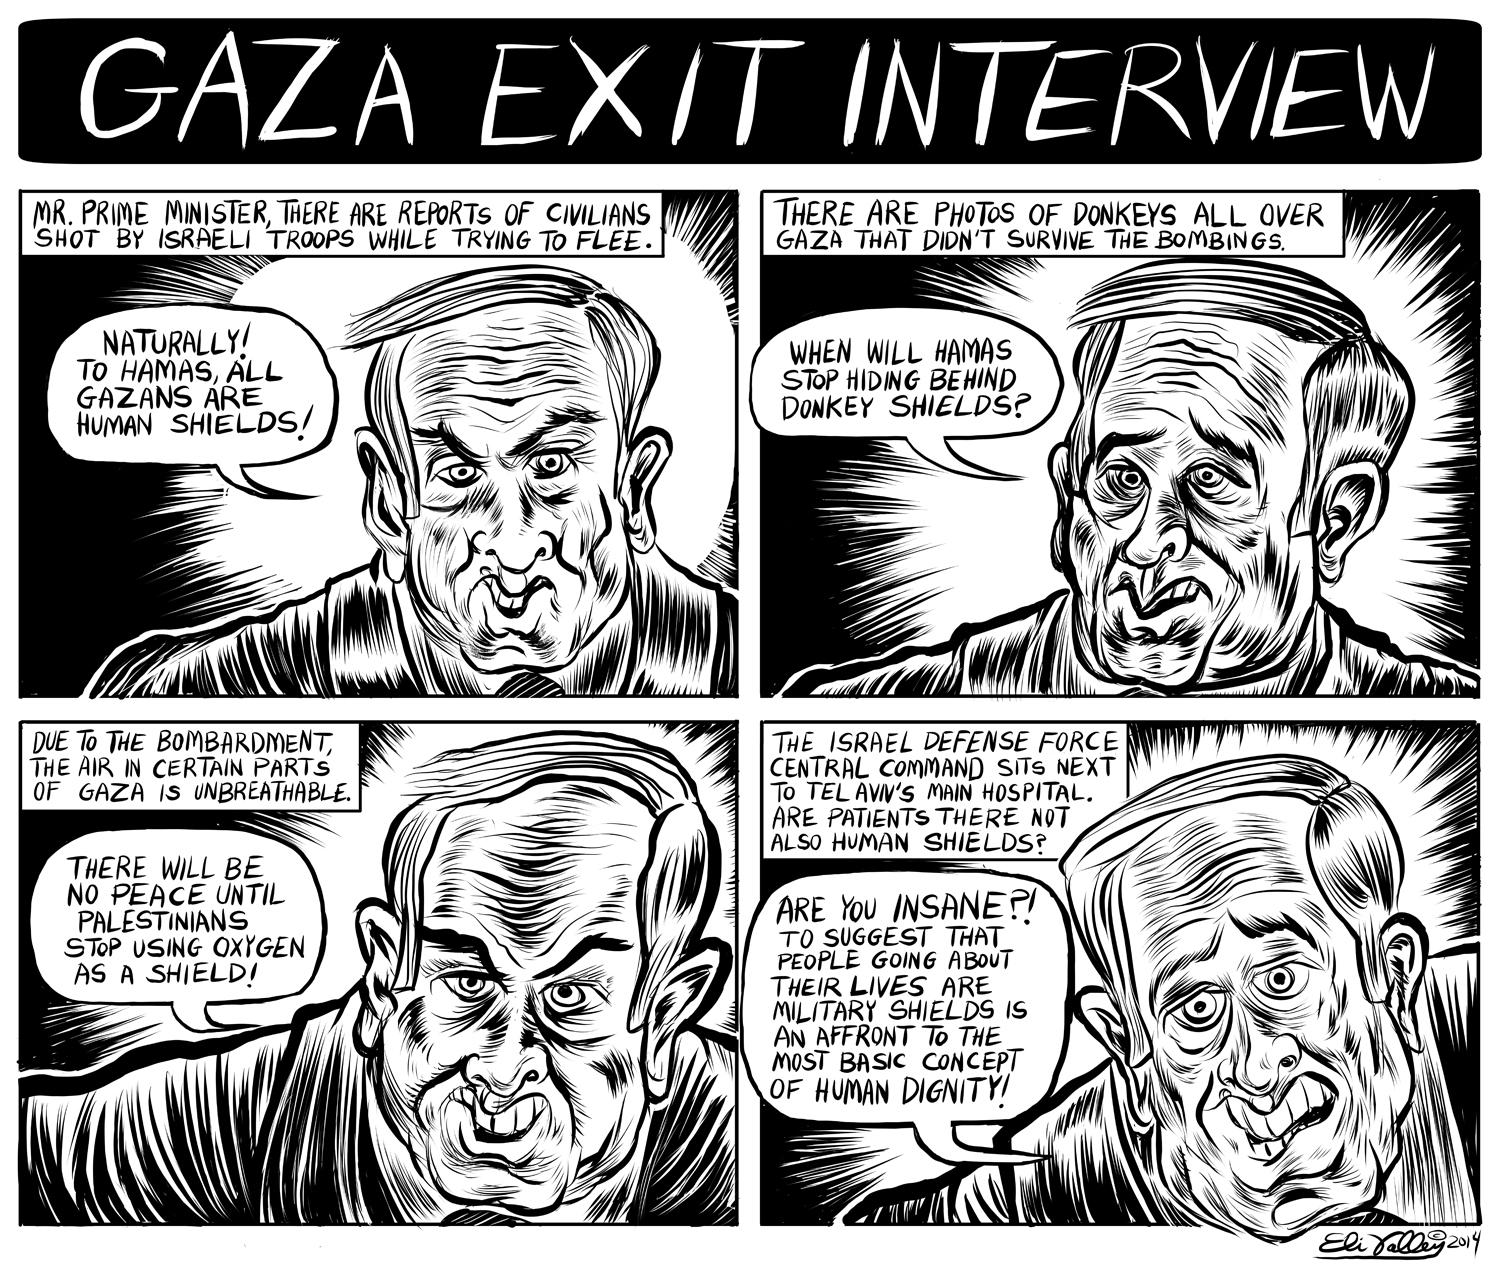 Gaza Exit Interview: Human Shields. +972 Magazine, 8/6/14